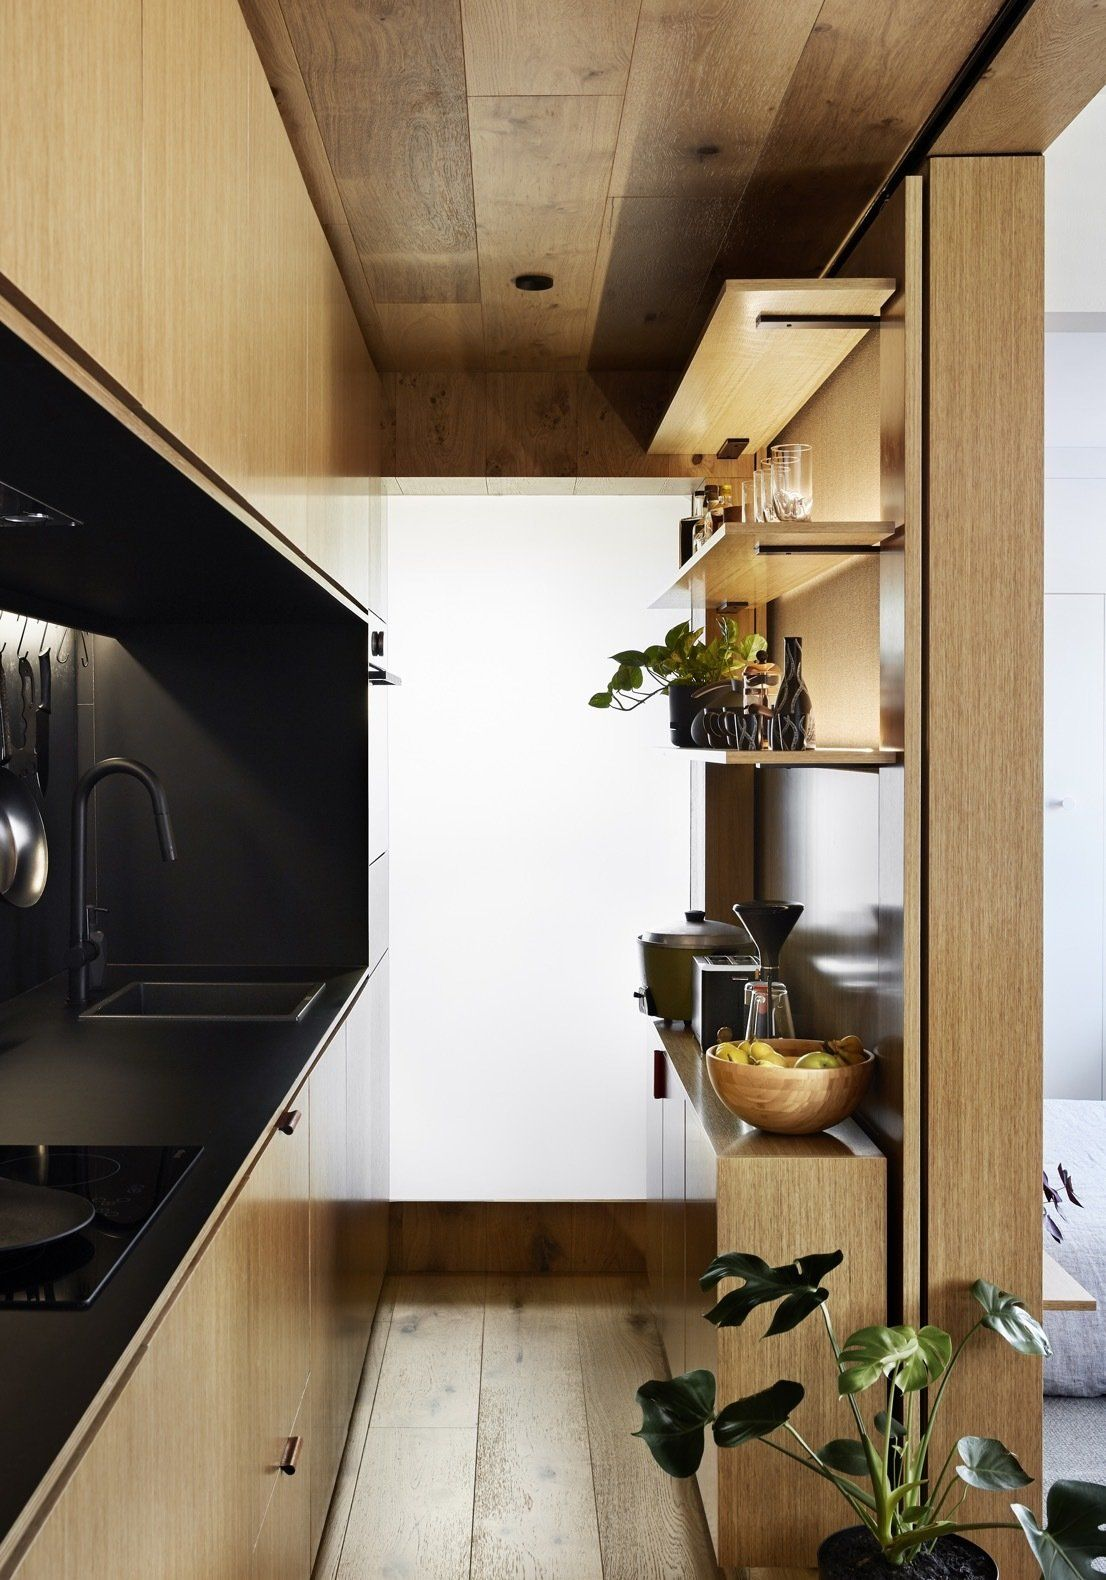 The originally tiny kitchen was expended and turned into a storage-efficient, open and very welcoming space